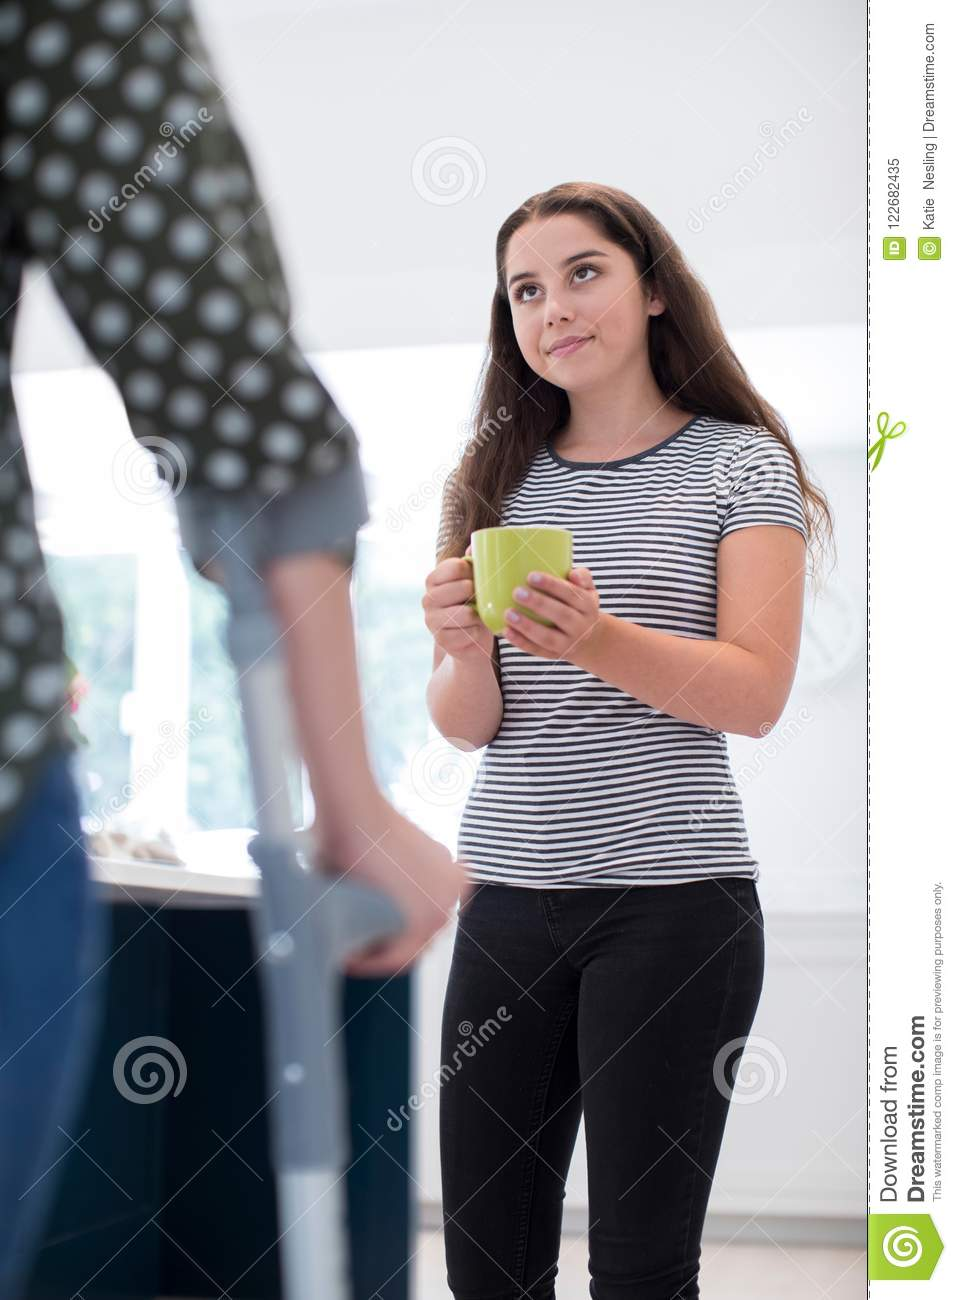 Parents Are Making Their Children Drink >> Teenage Daughter Making Drink For Disabled Parent Stock Image